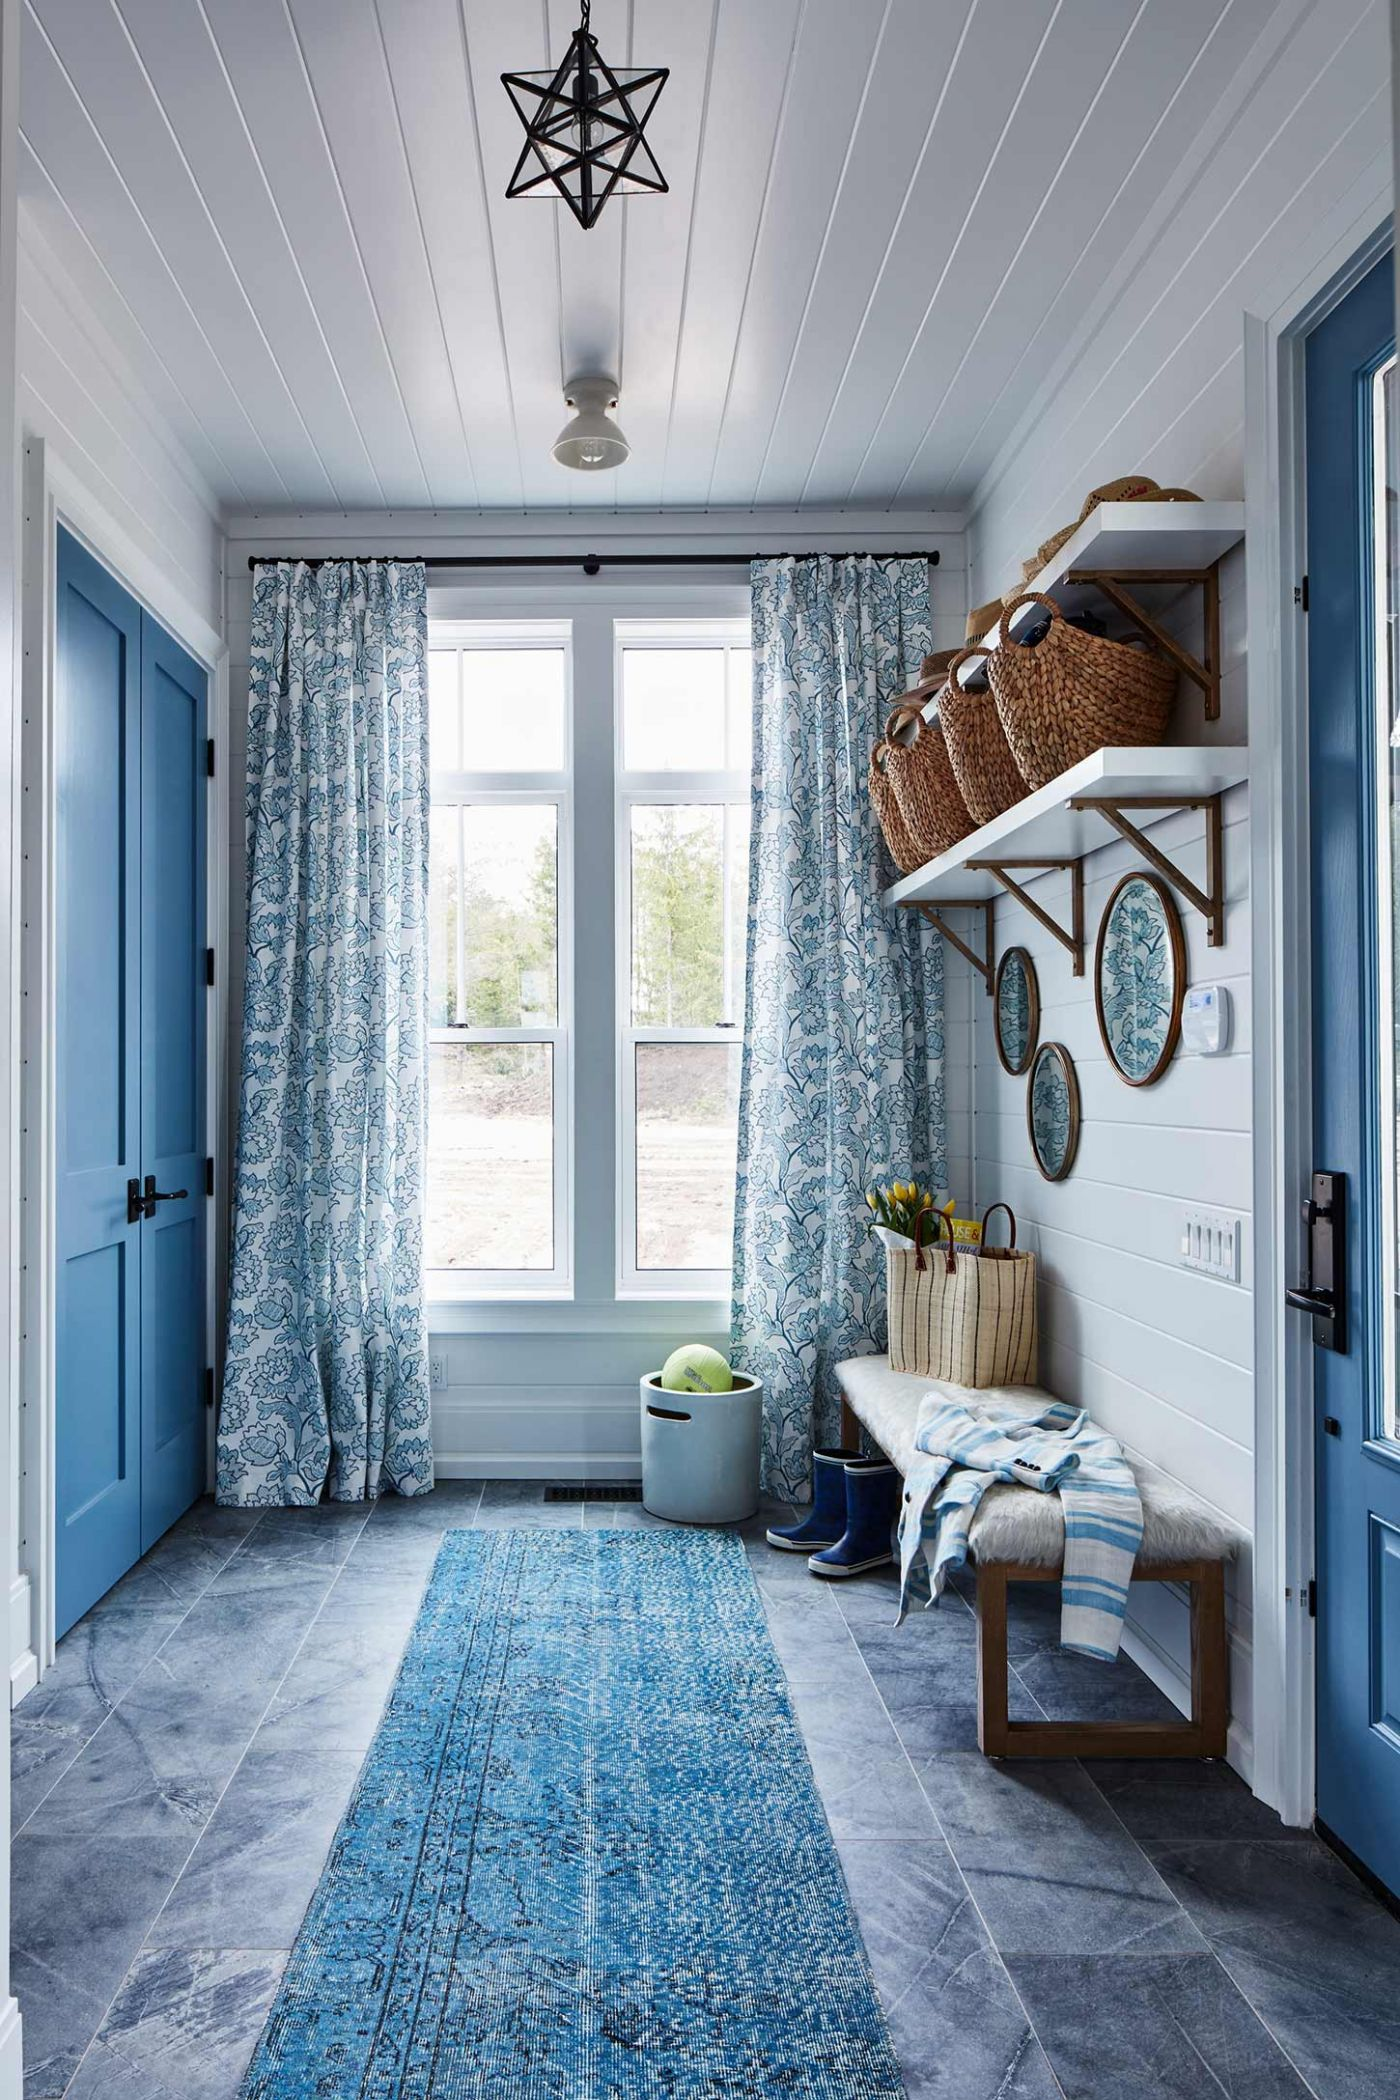 Mudroom - Sarah off the Grid. Blue stone tiles, a blue runner, and beautiful blue curtains in a mud room with open shelving and lovely decor. #mudroom #shiplap #bluedecor